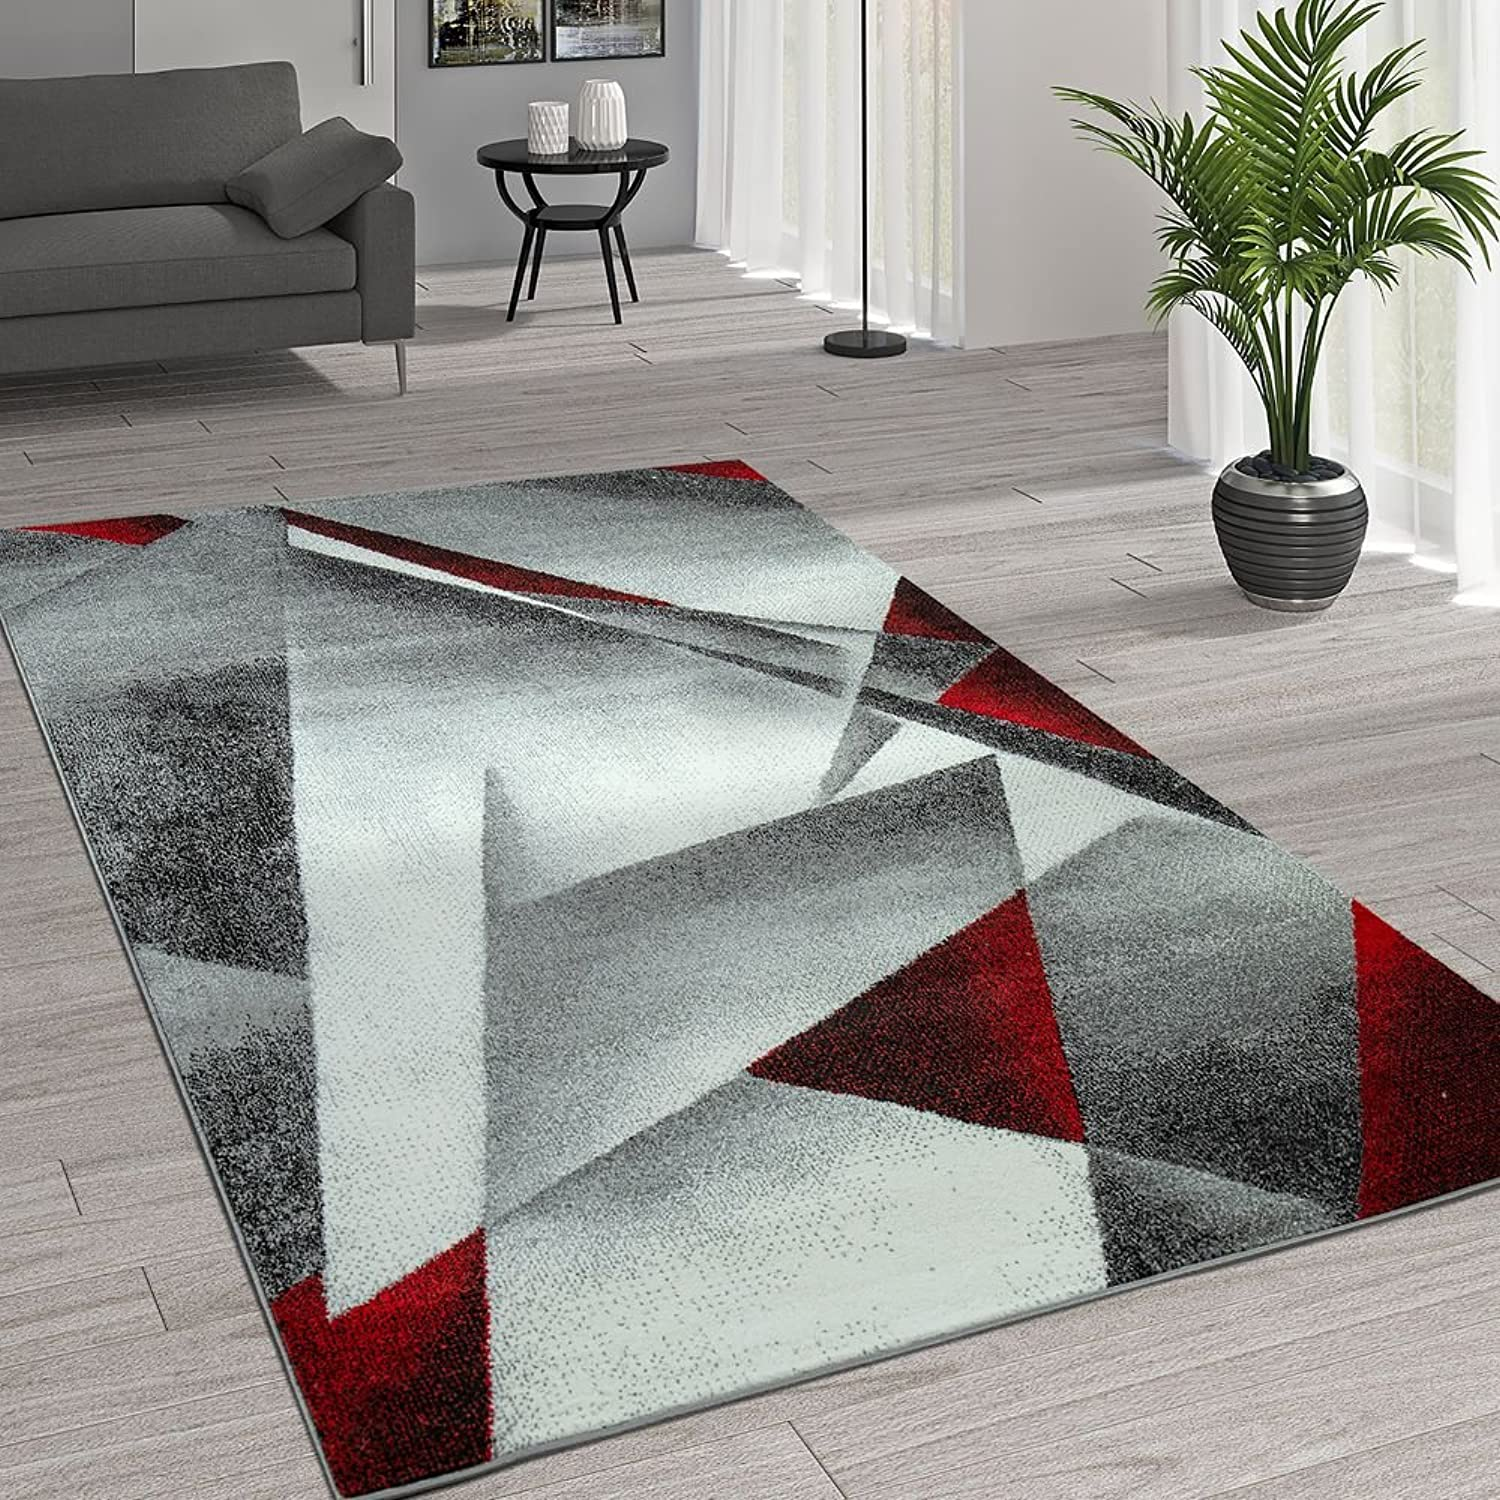 Paco Home Geometrische Cm 240x320 Grsse Rot Grau Muster